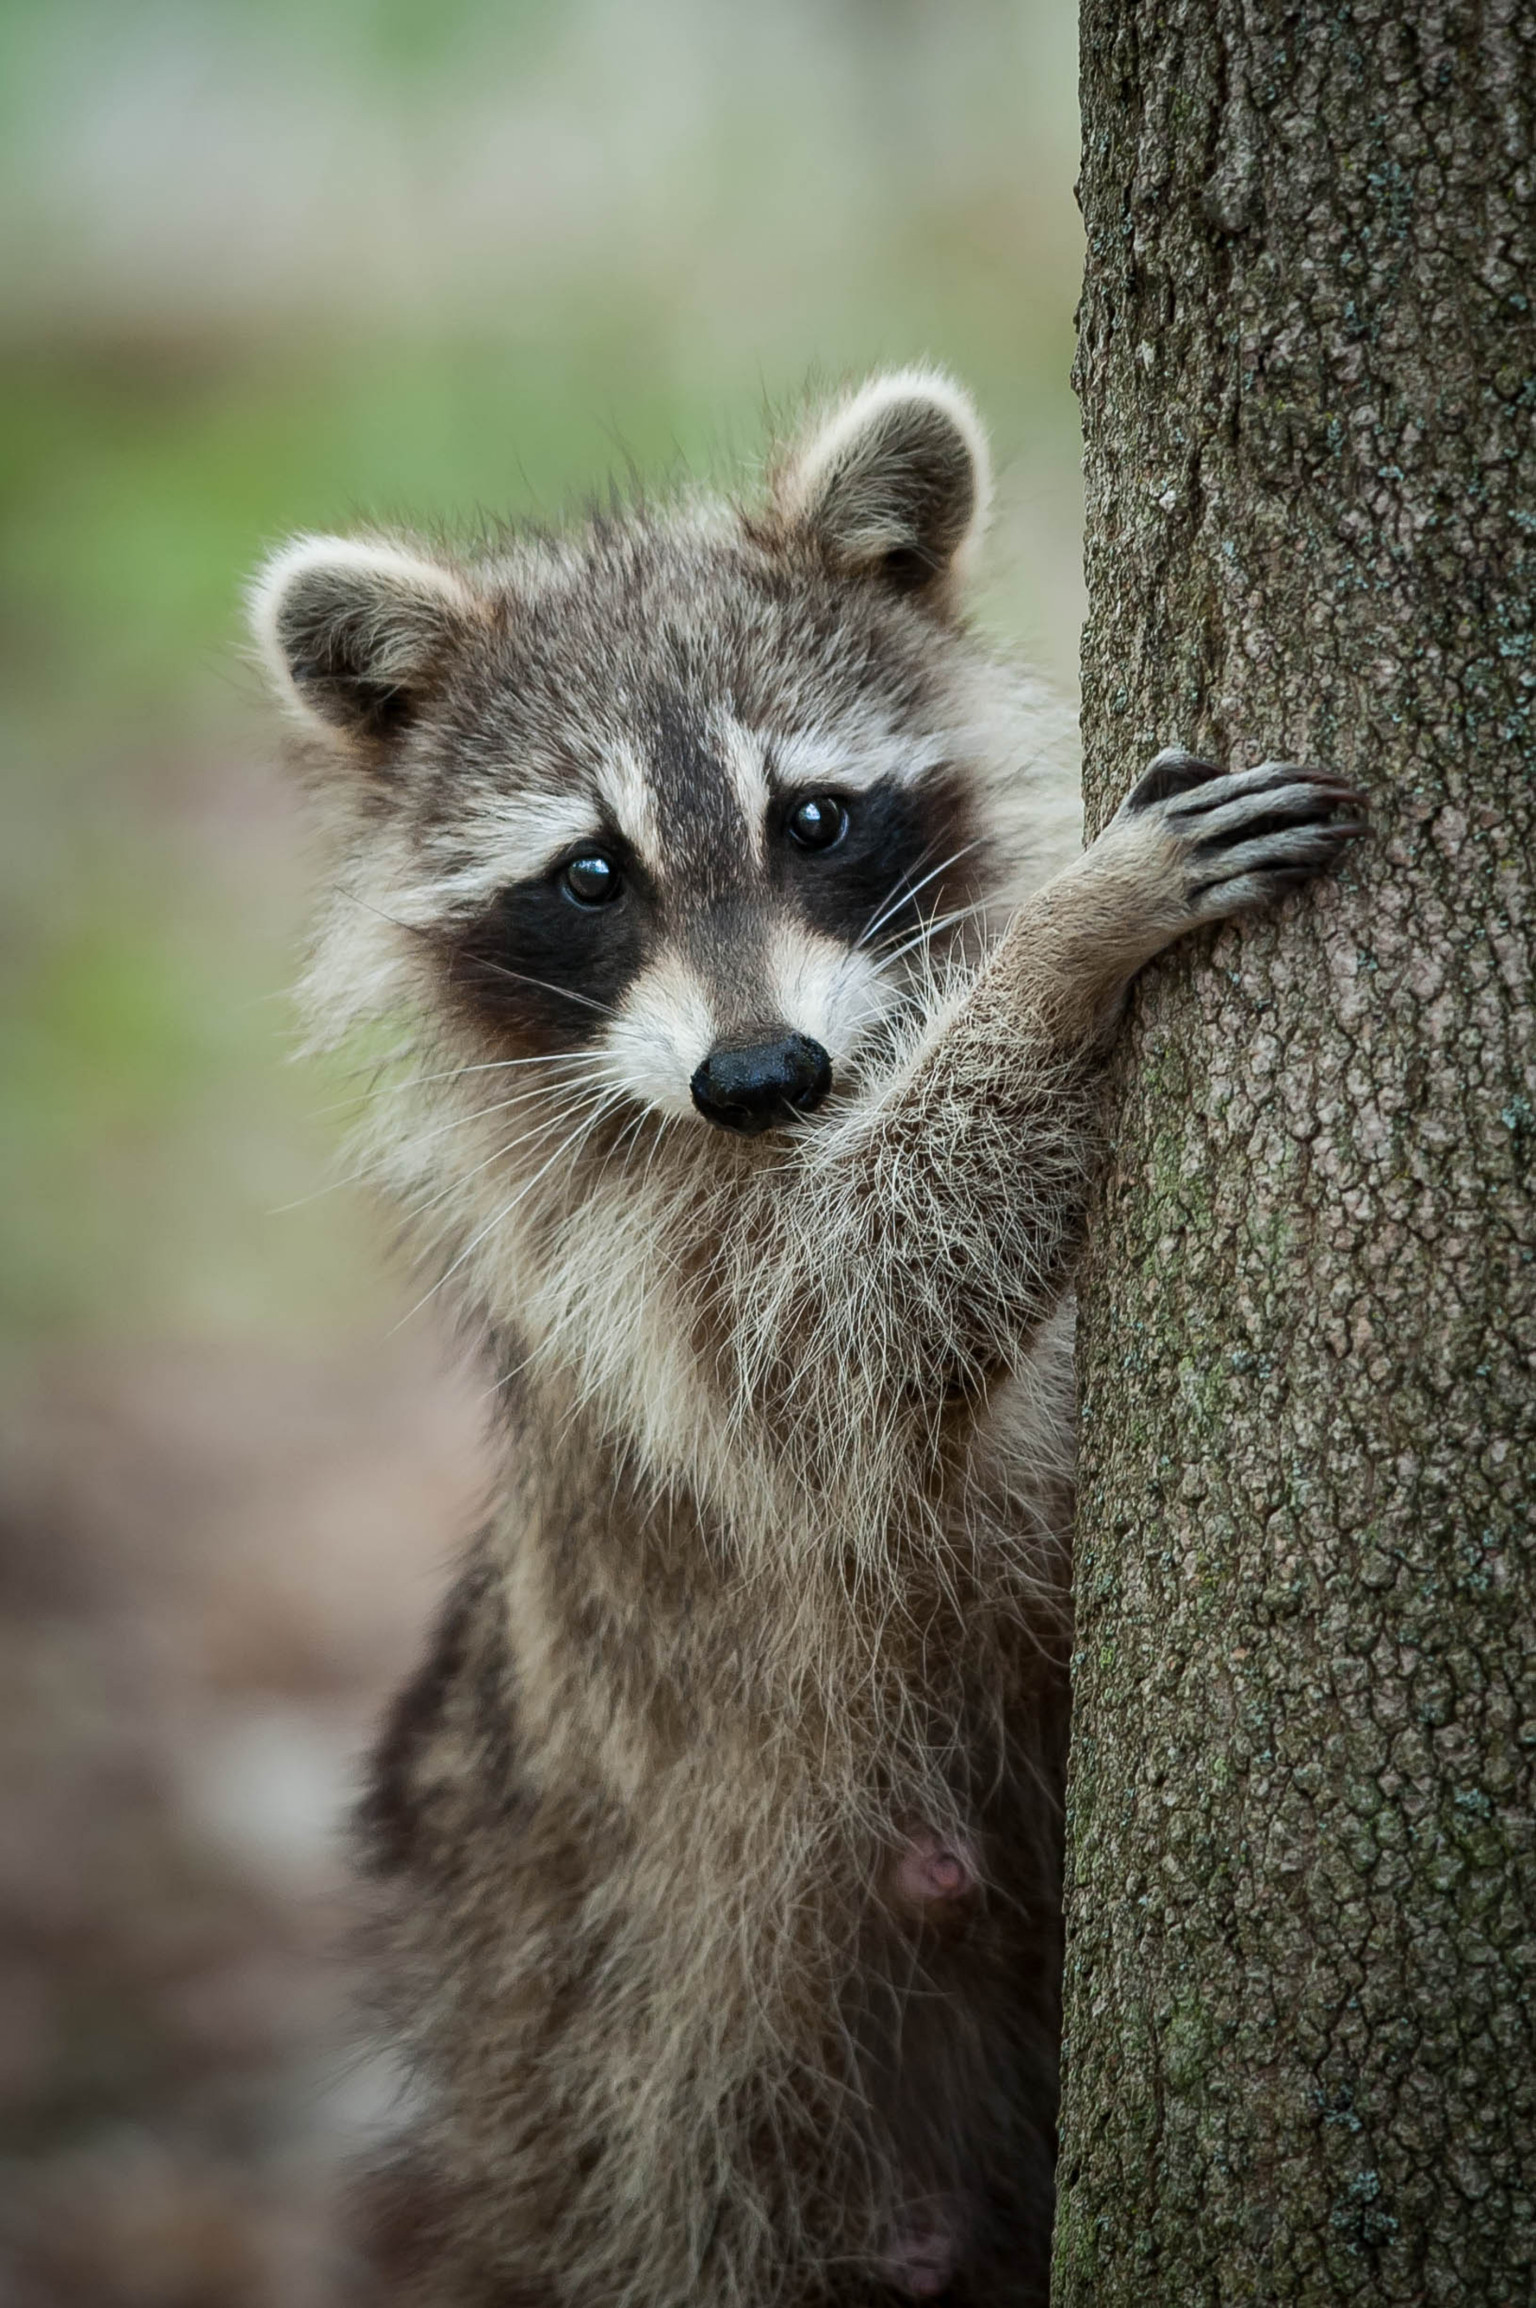 saw a raccoon outside in the daytime it might not be what you